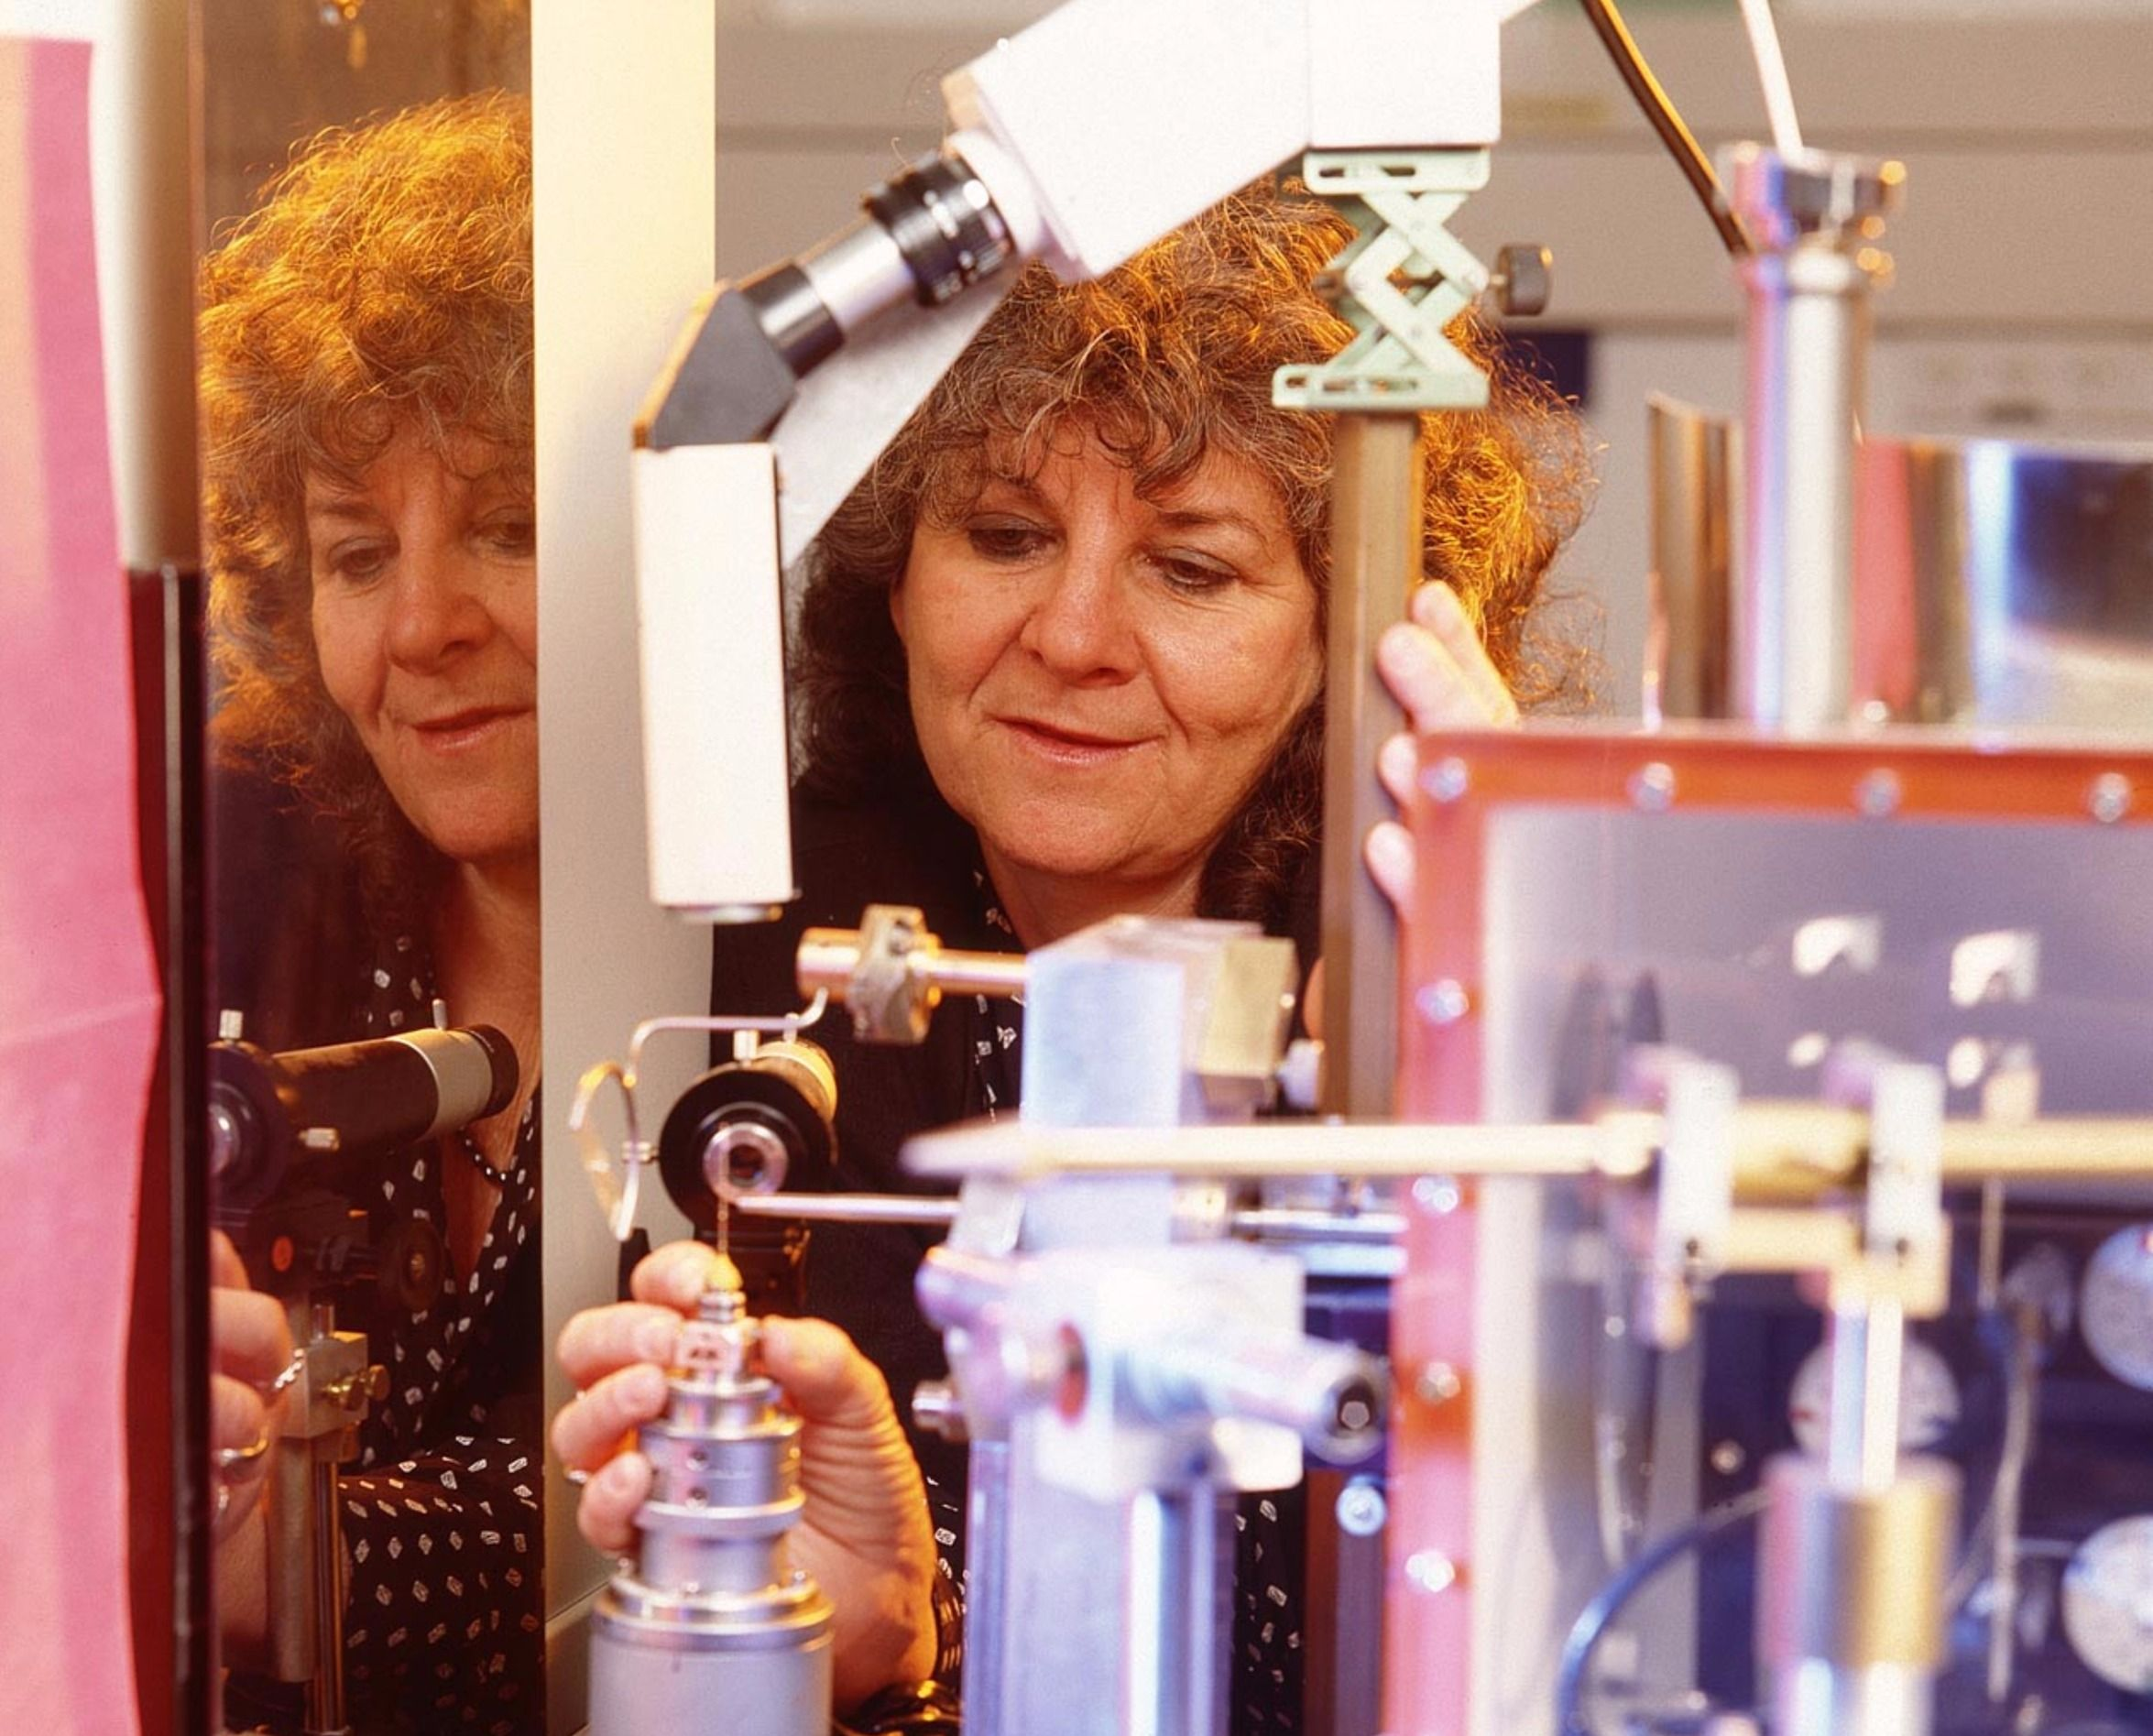 Ada Yonath of the Weizmann Institute of Science won the 2009 Nobel Prize in Chemistry for her work researching the ribosome.